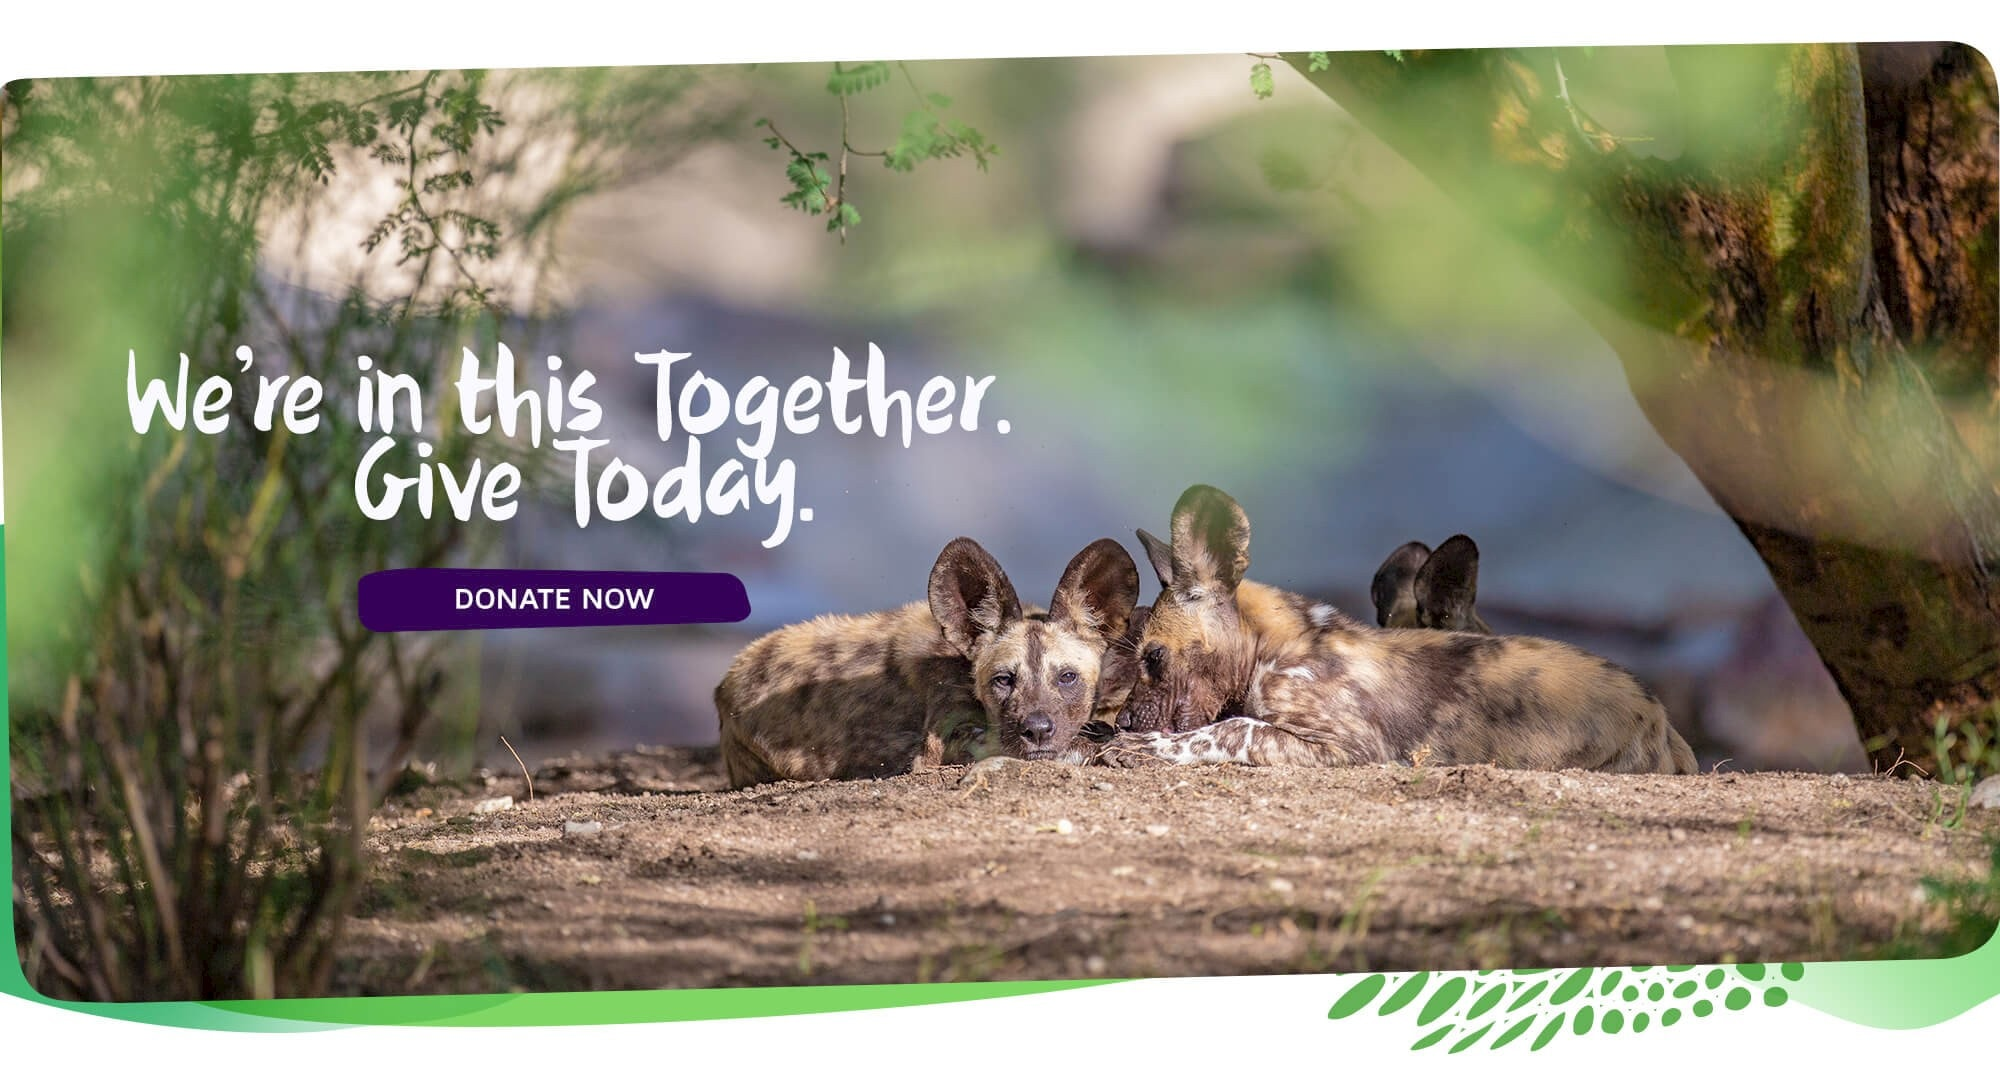 We're in this together. Give today. Click to donate.